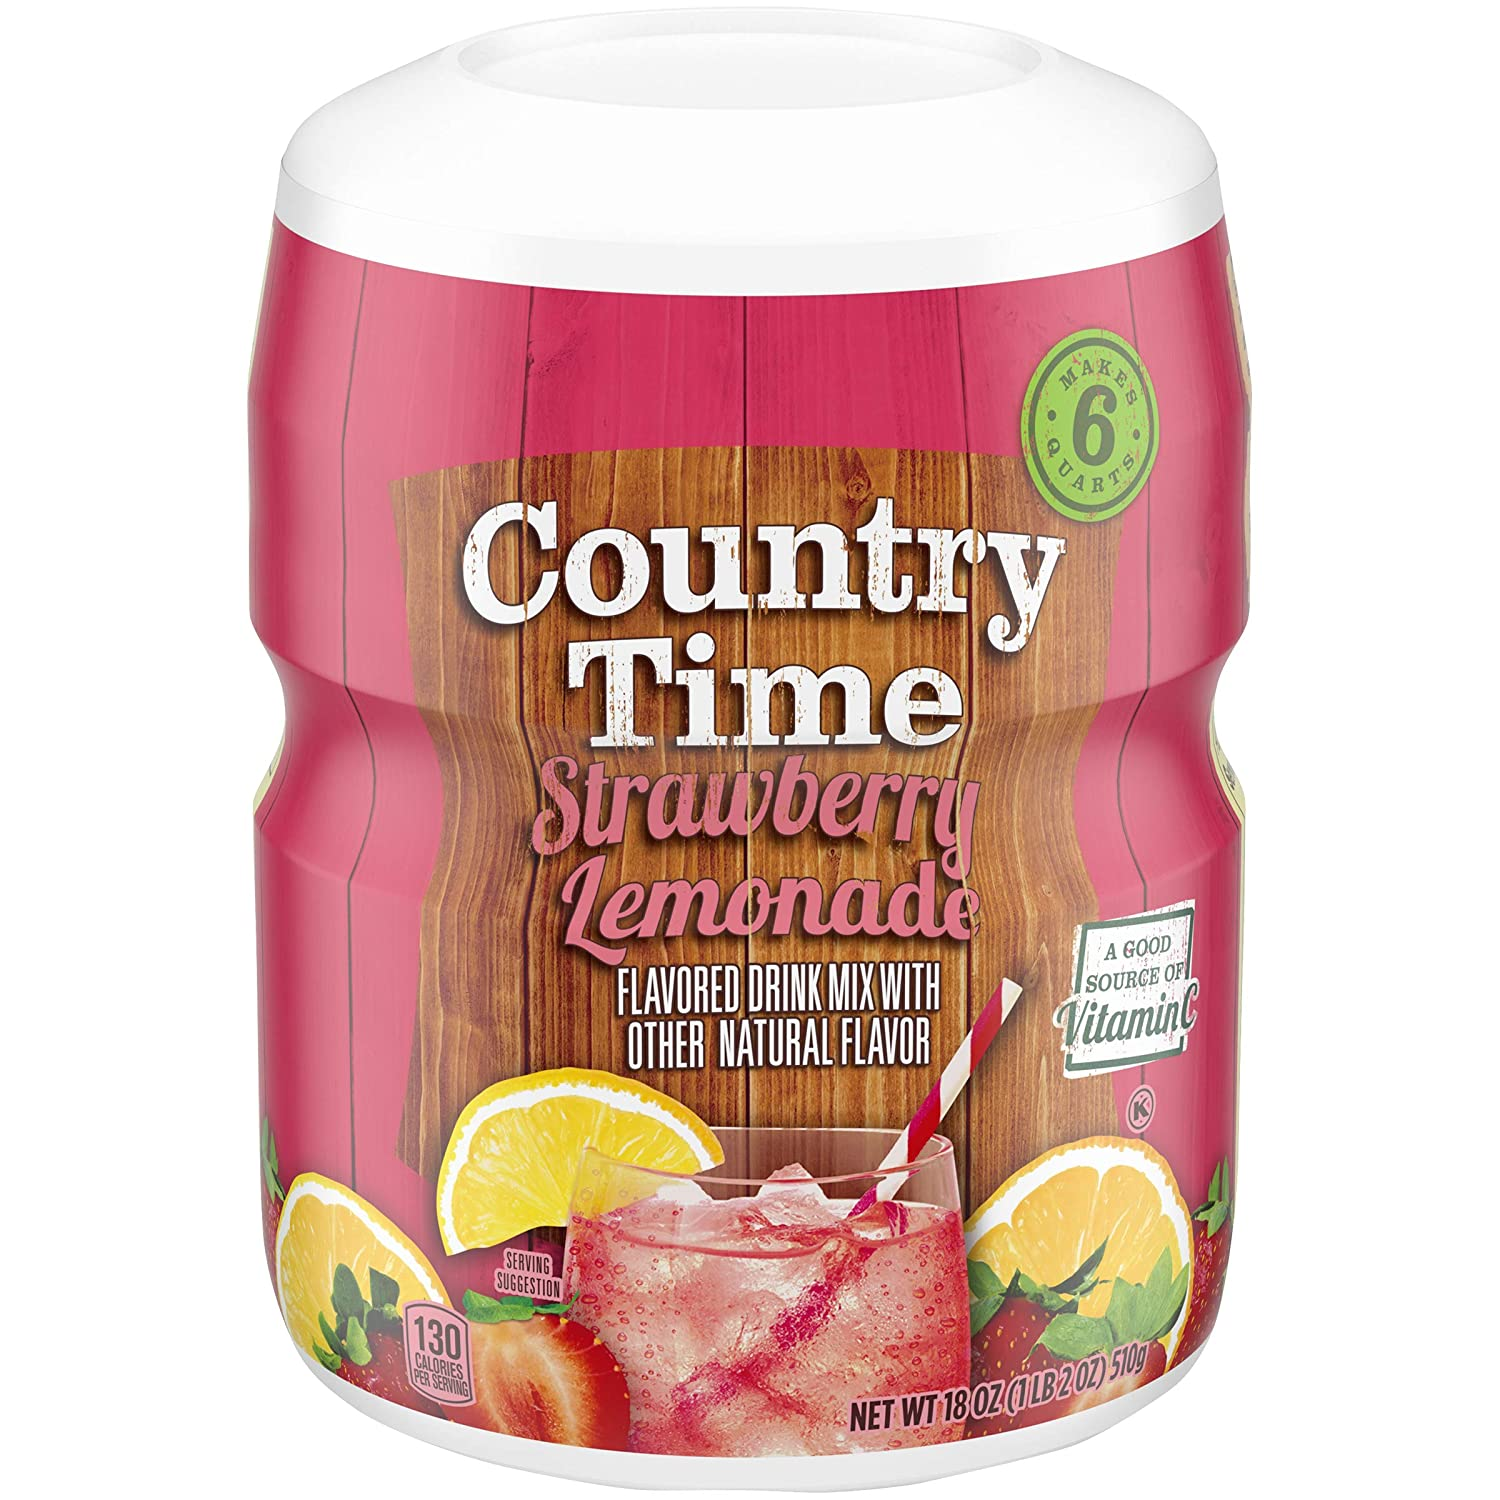 Country Time Strawberry Lemonade Drink Mix (18 oz Canisters, Pack Of 6)